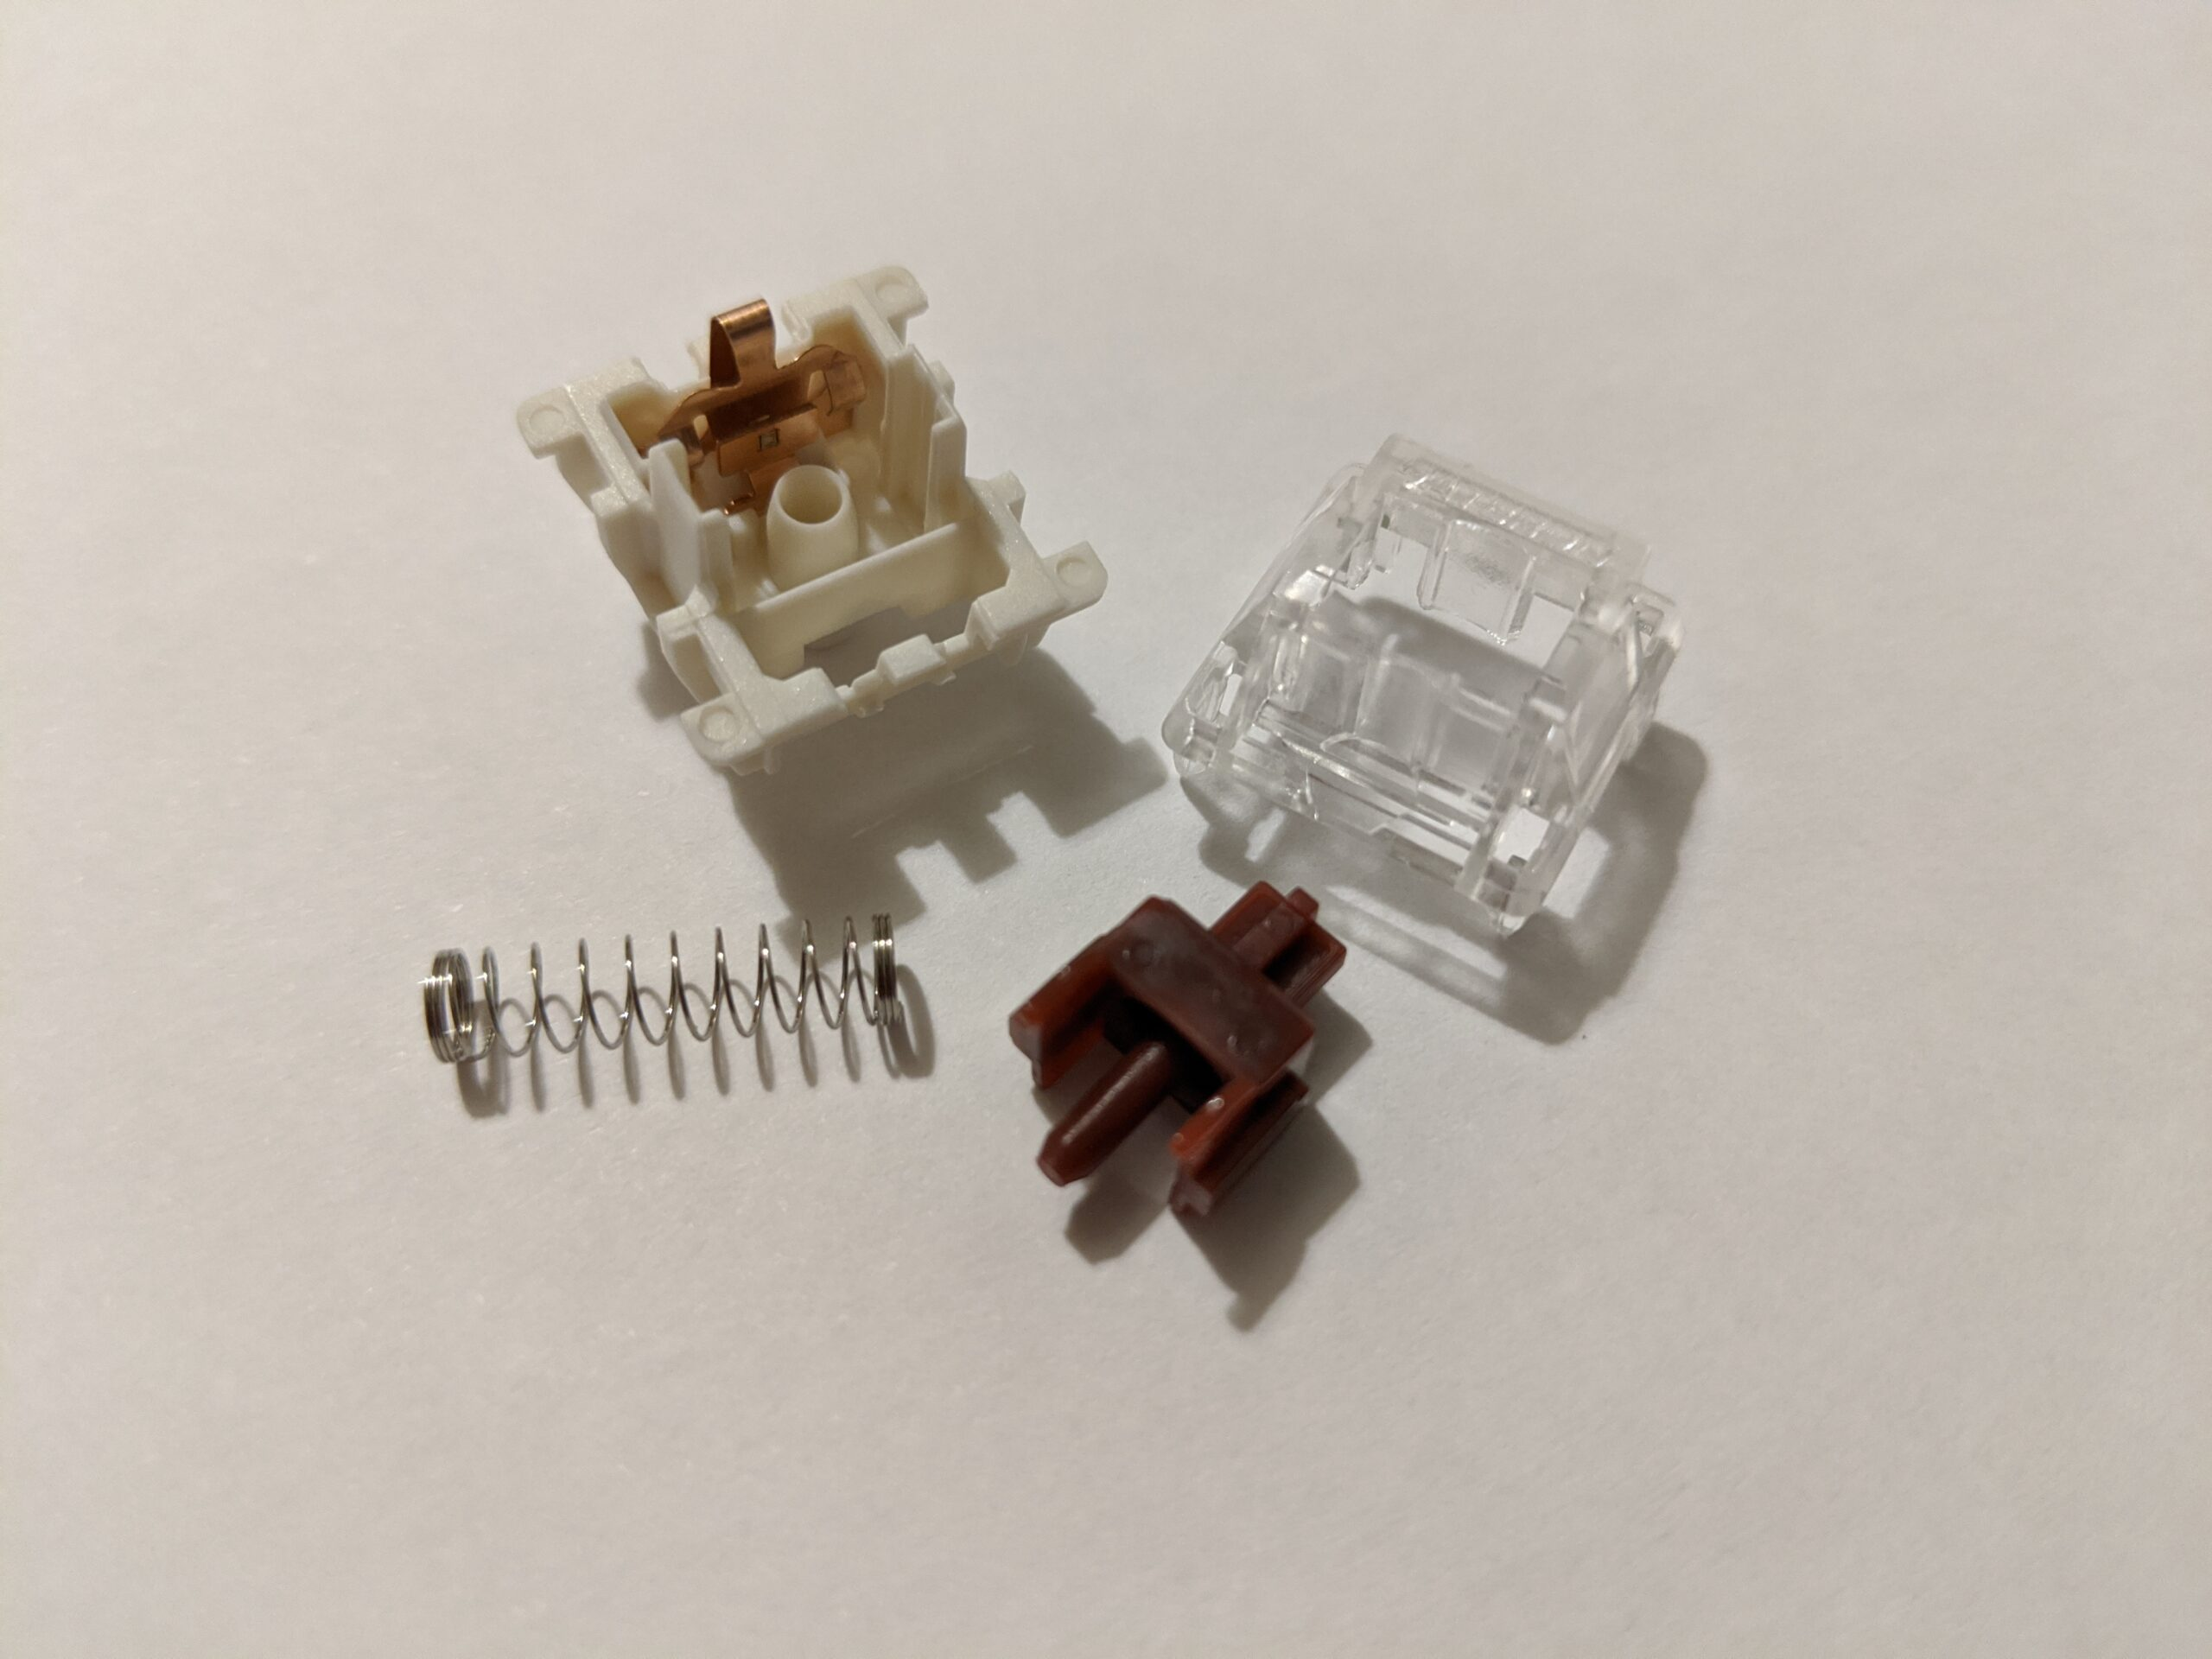 Gateron Brown switch disassembled